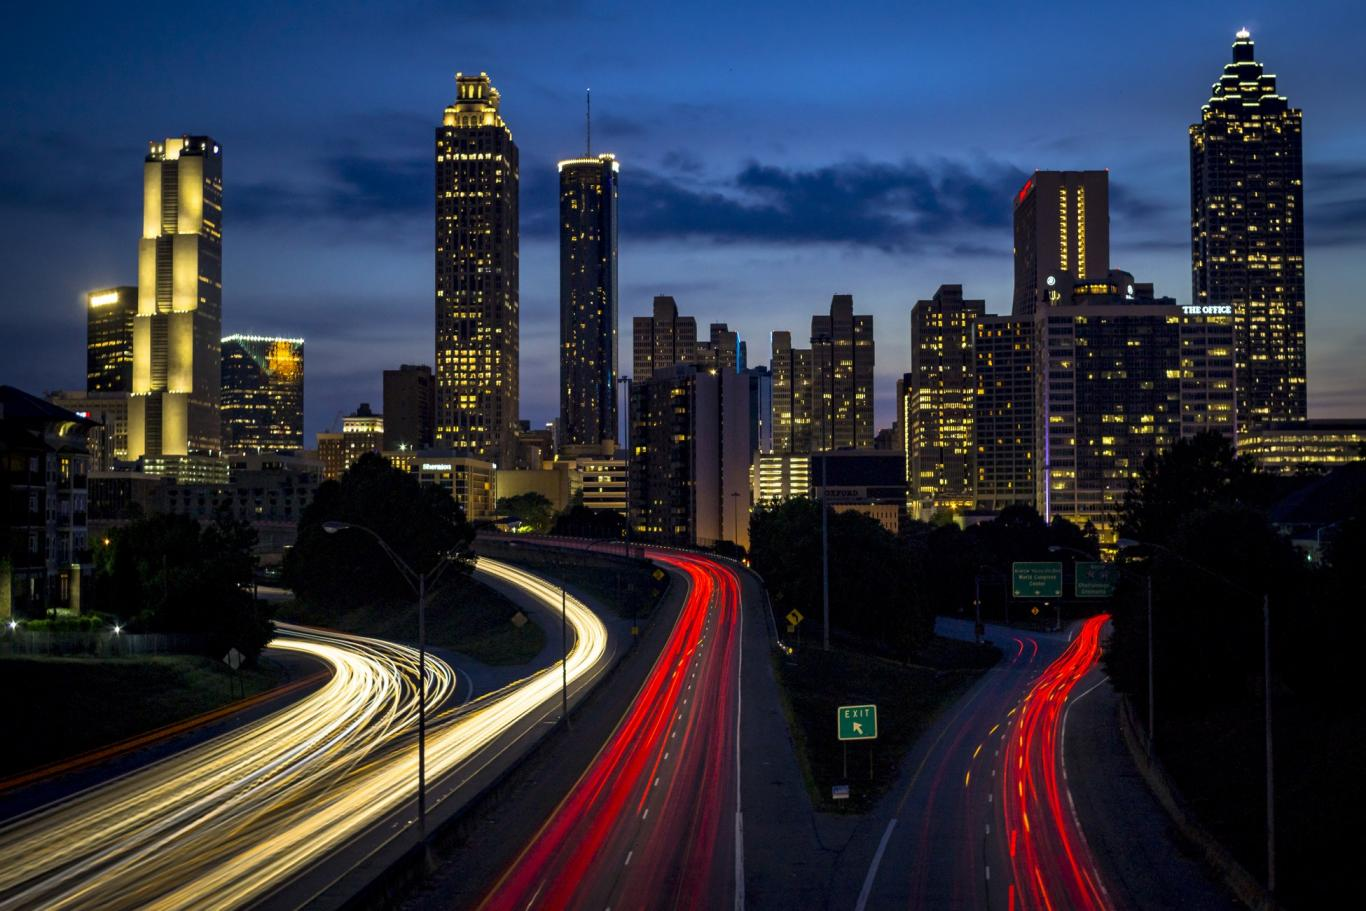 Jackson Street Bridge, Atlanta, United States.jpeg